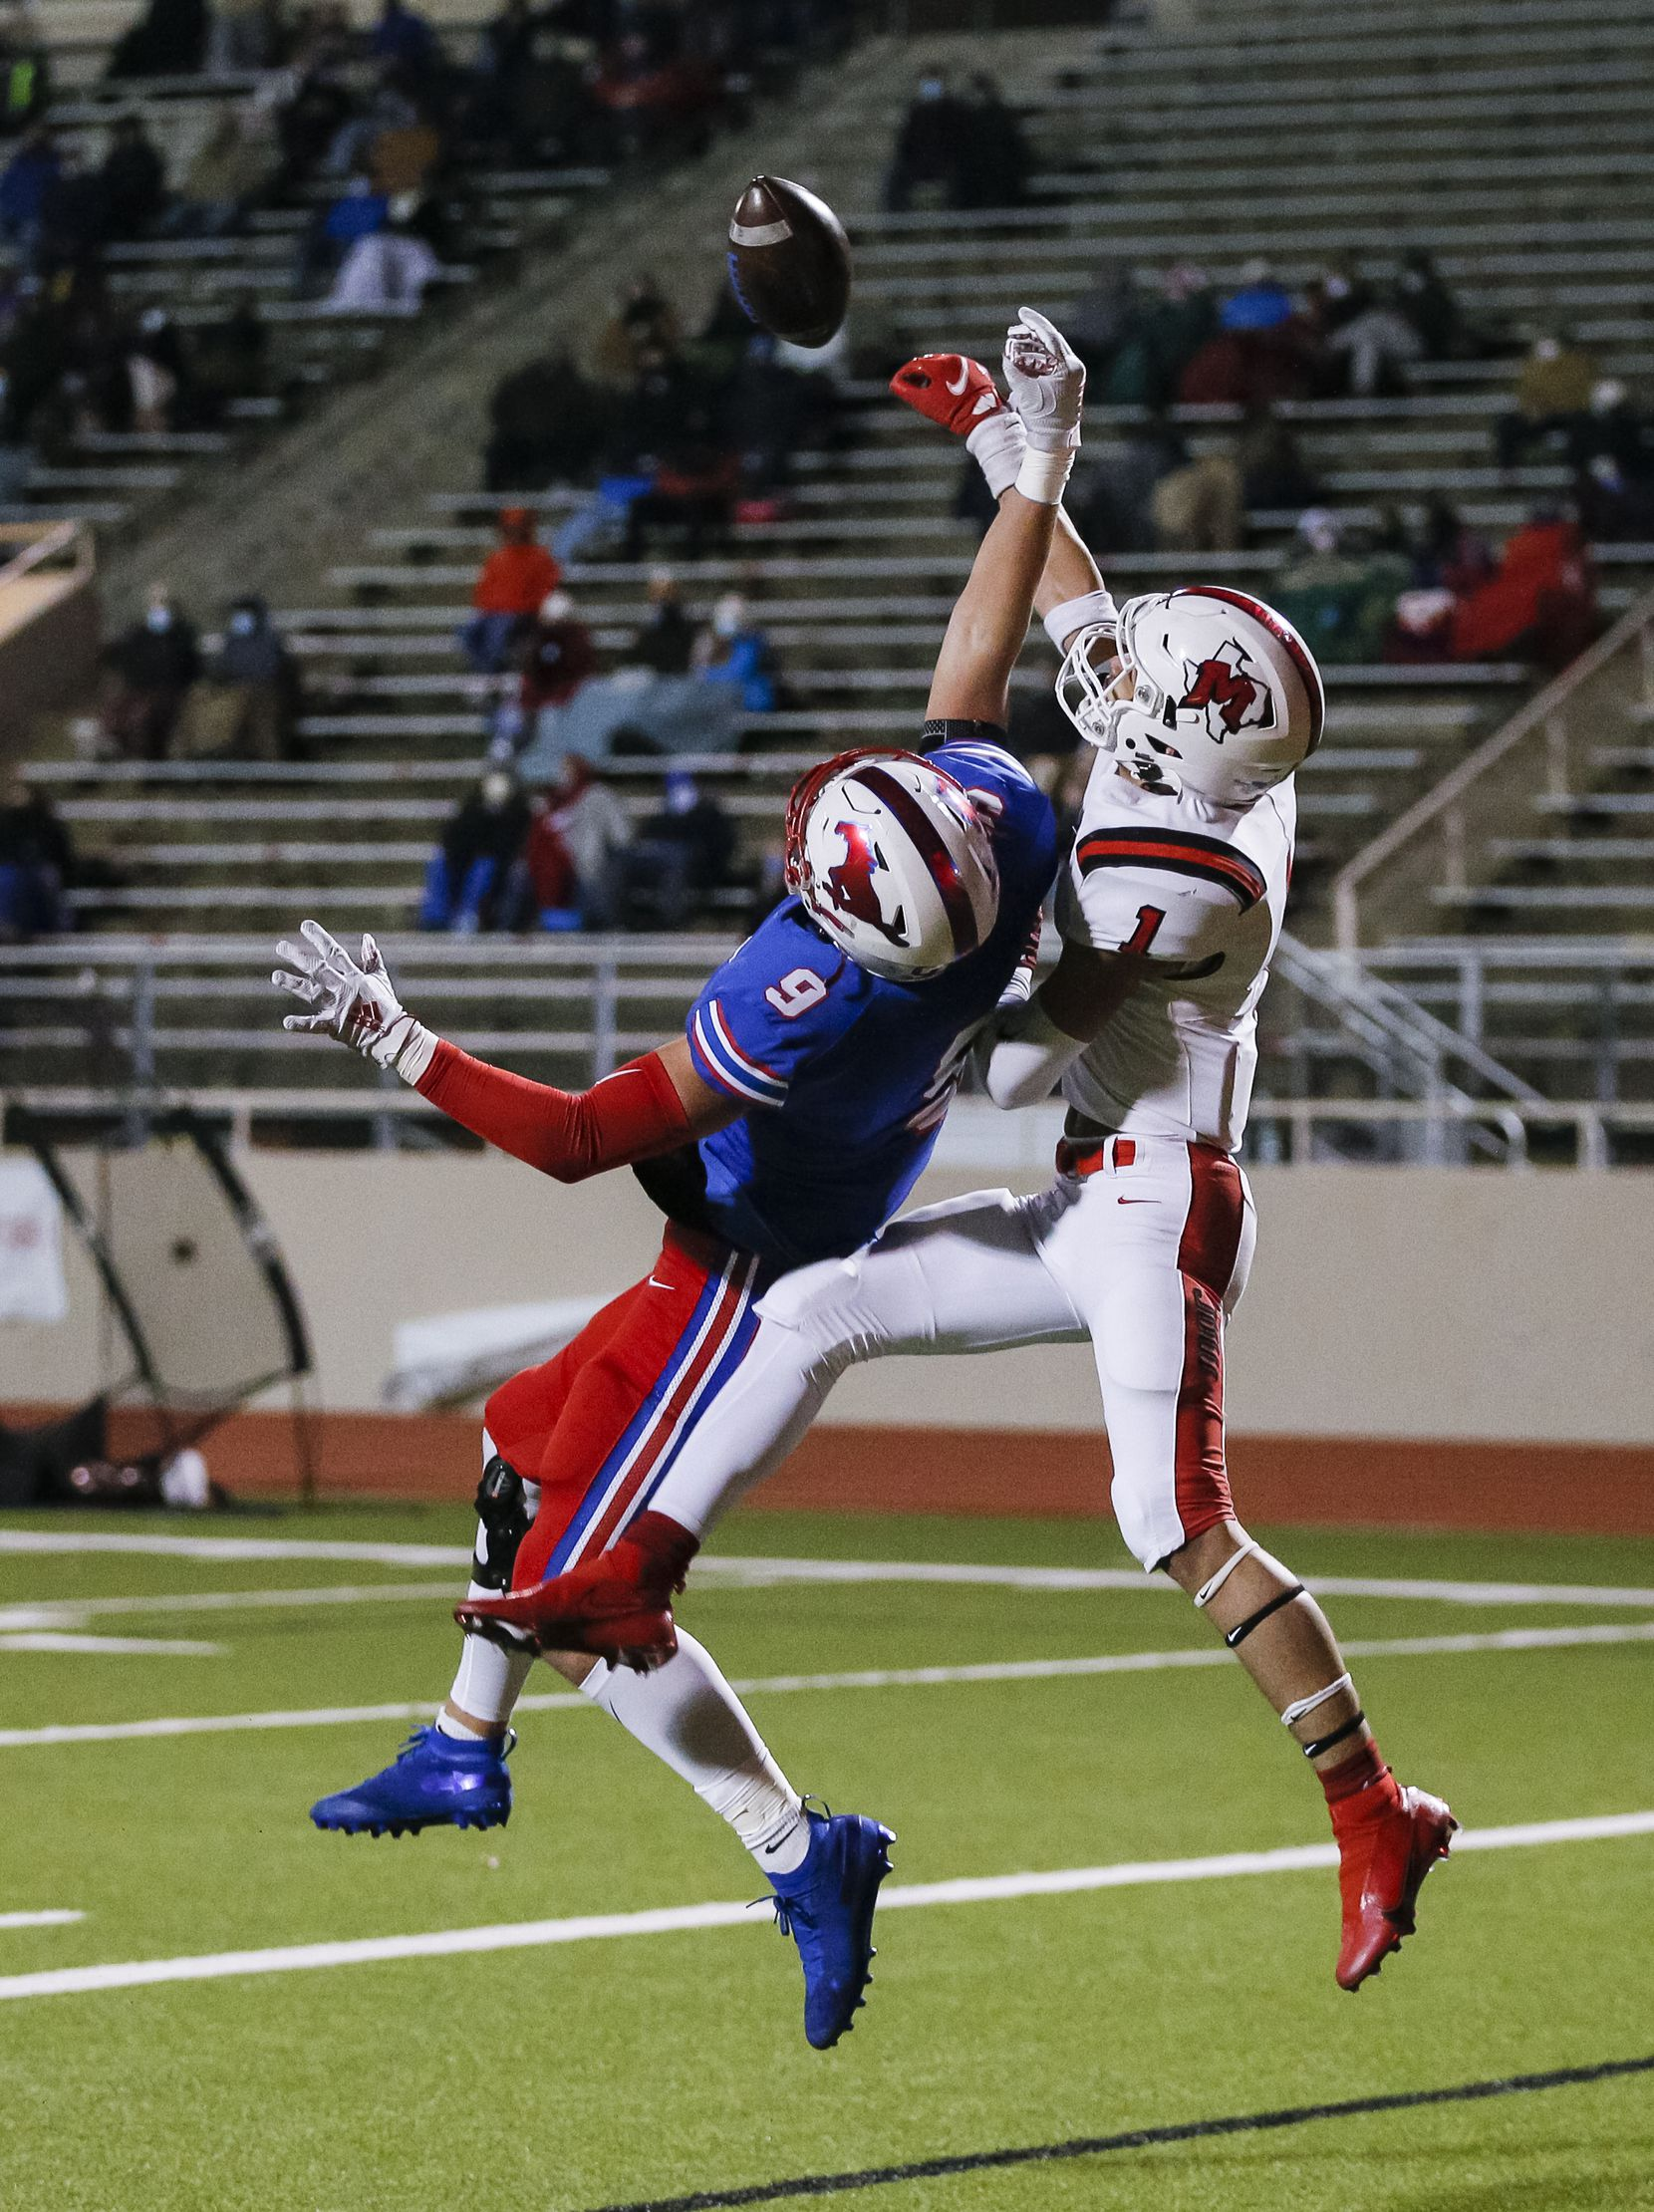 Irving MacArthur senior Roland Jackson (1) breaks up a pass intended for JJ Pearce senior halfback Dylan Adams (9) in the end zone during the first half of a high school playoff football game at Eagle-Mustang Stadium in Richardson, Thursday, December 3, 2020. (Brandon Wade/Special Contributor)